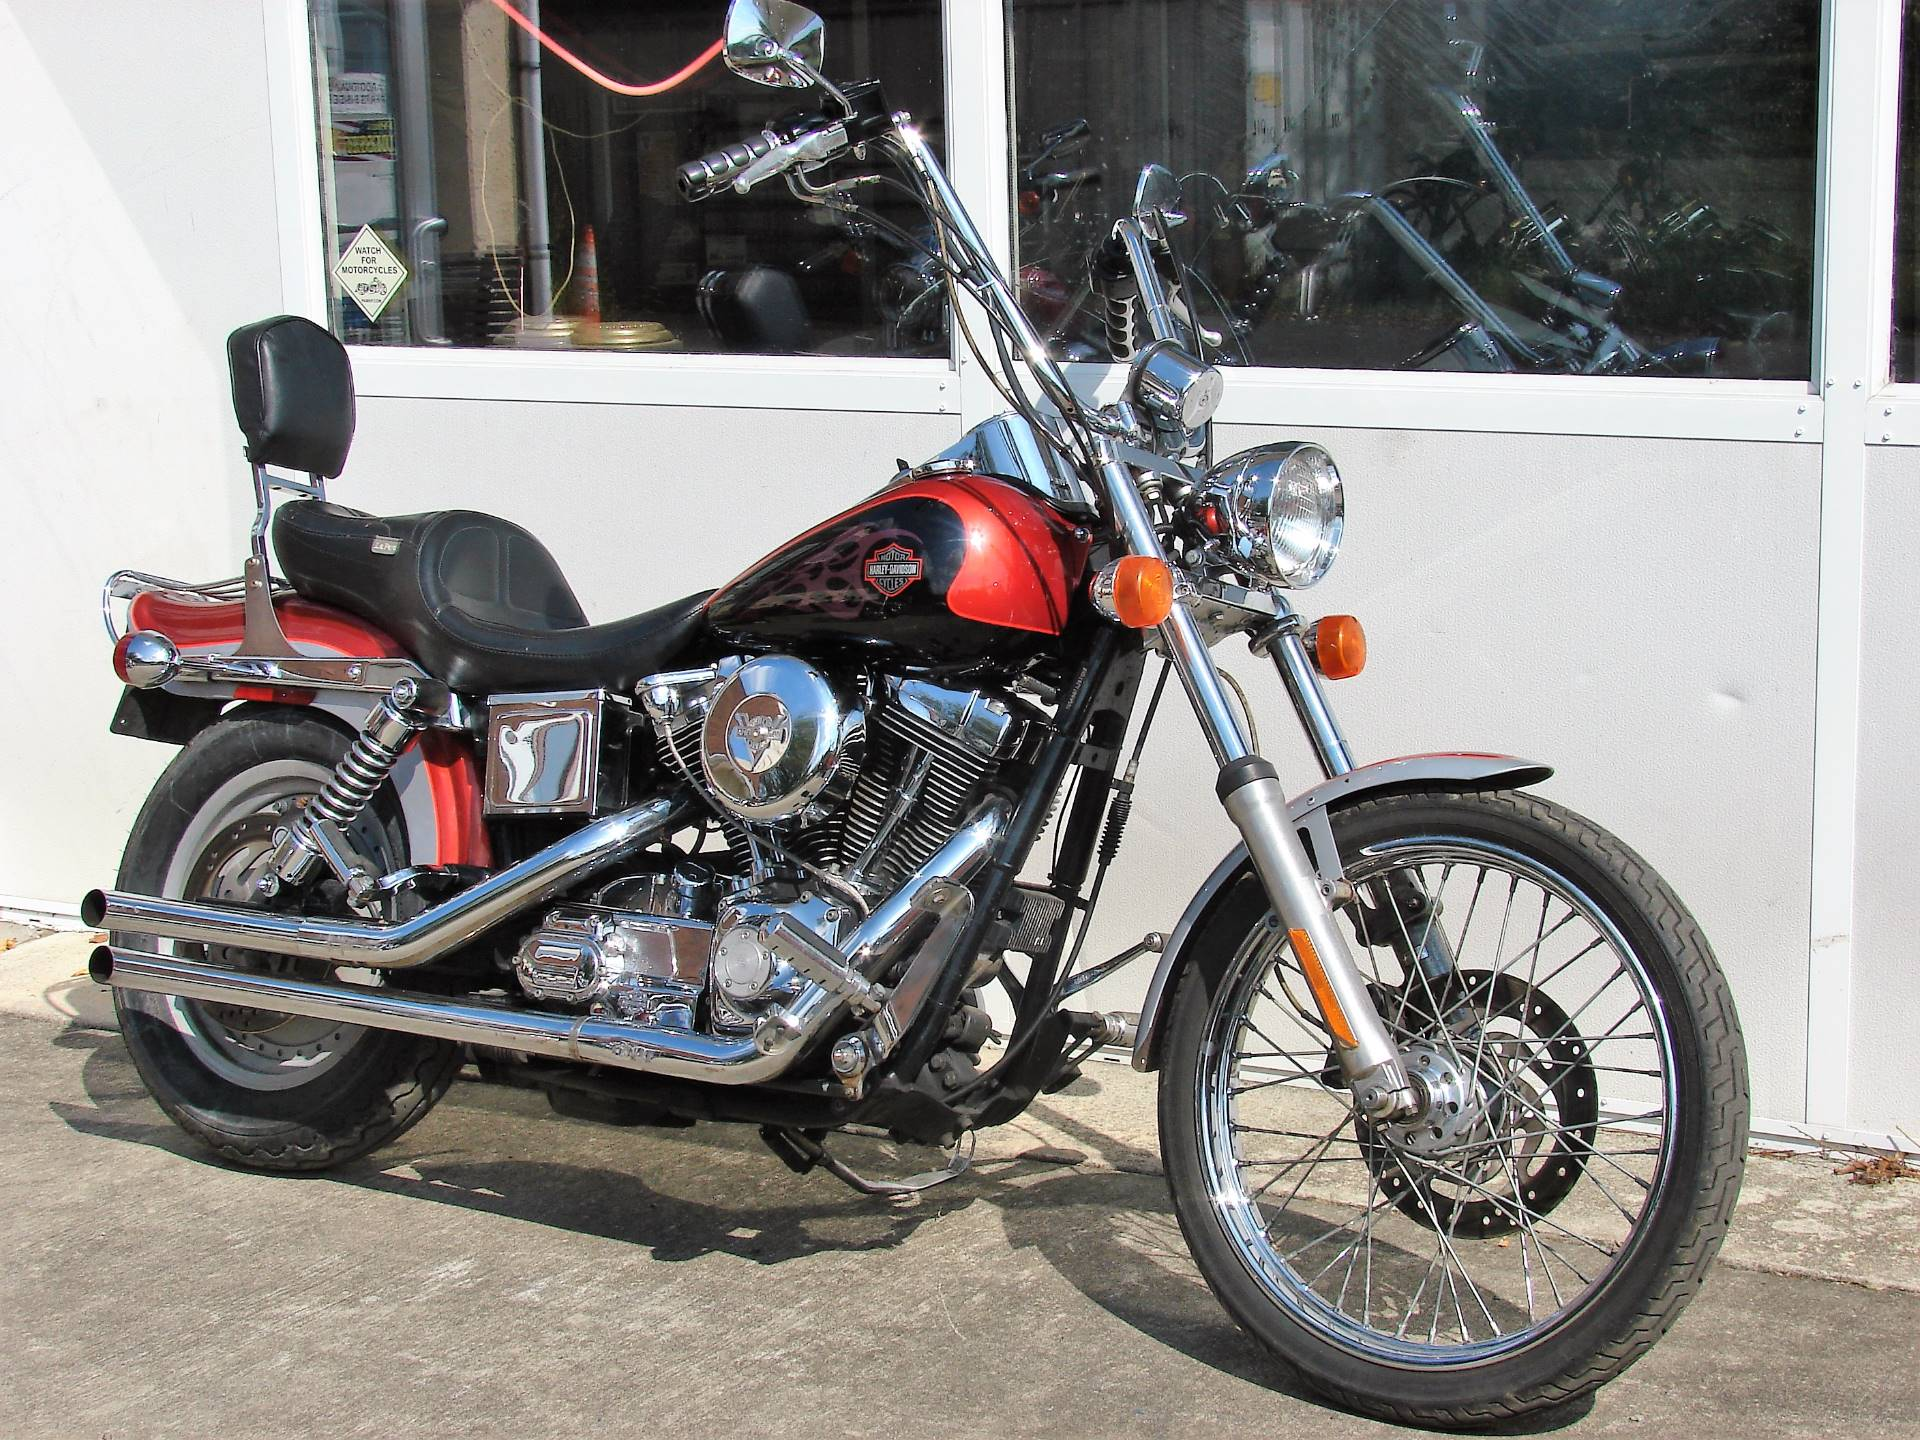 2000 Harley-Davidson FXDWG Dyna Wide Glide in Williamstown, New Jersey - Photo 5